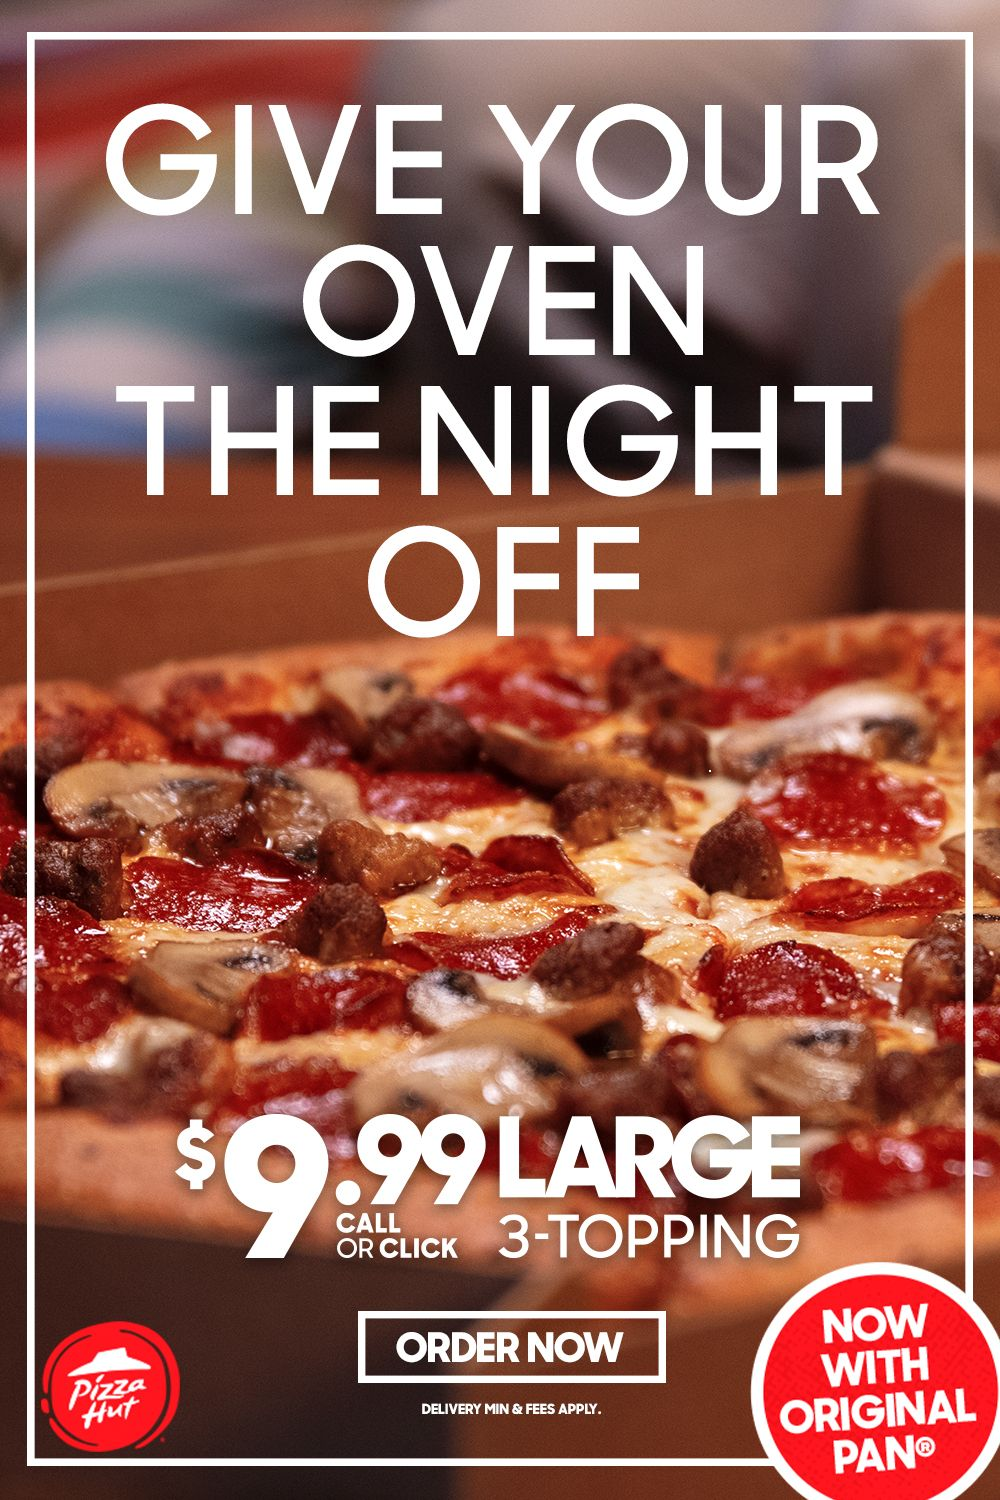 Limited Time Only 9 99 Large 3 Topping Now With Original Pan